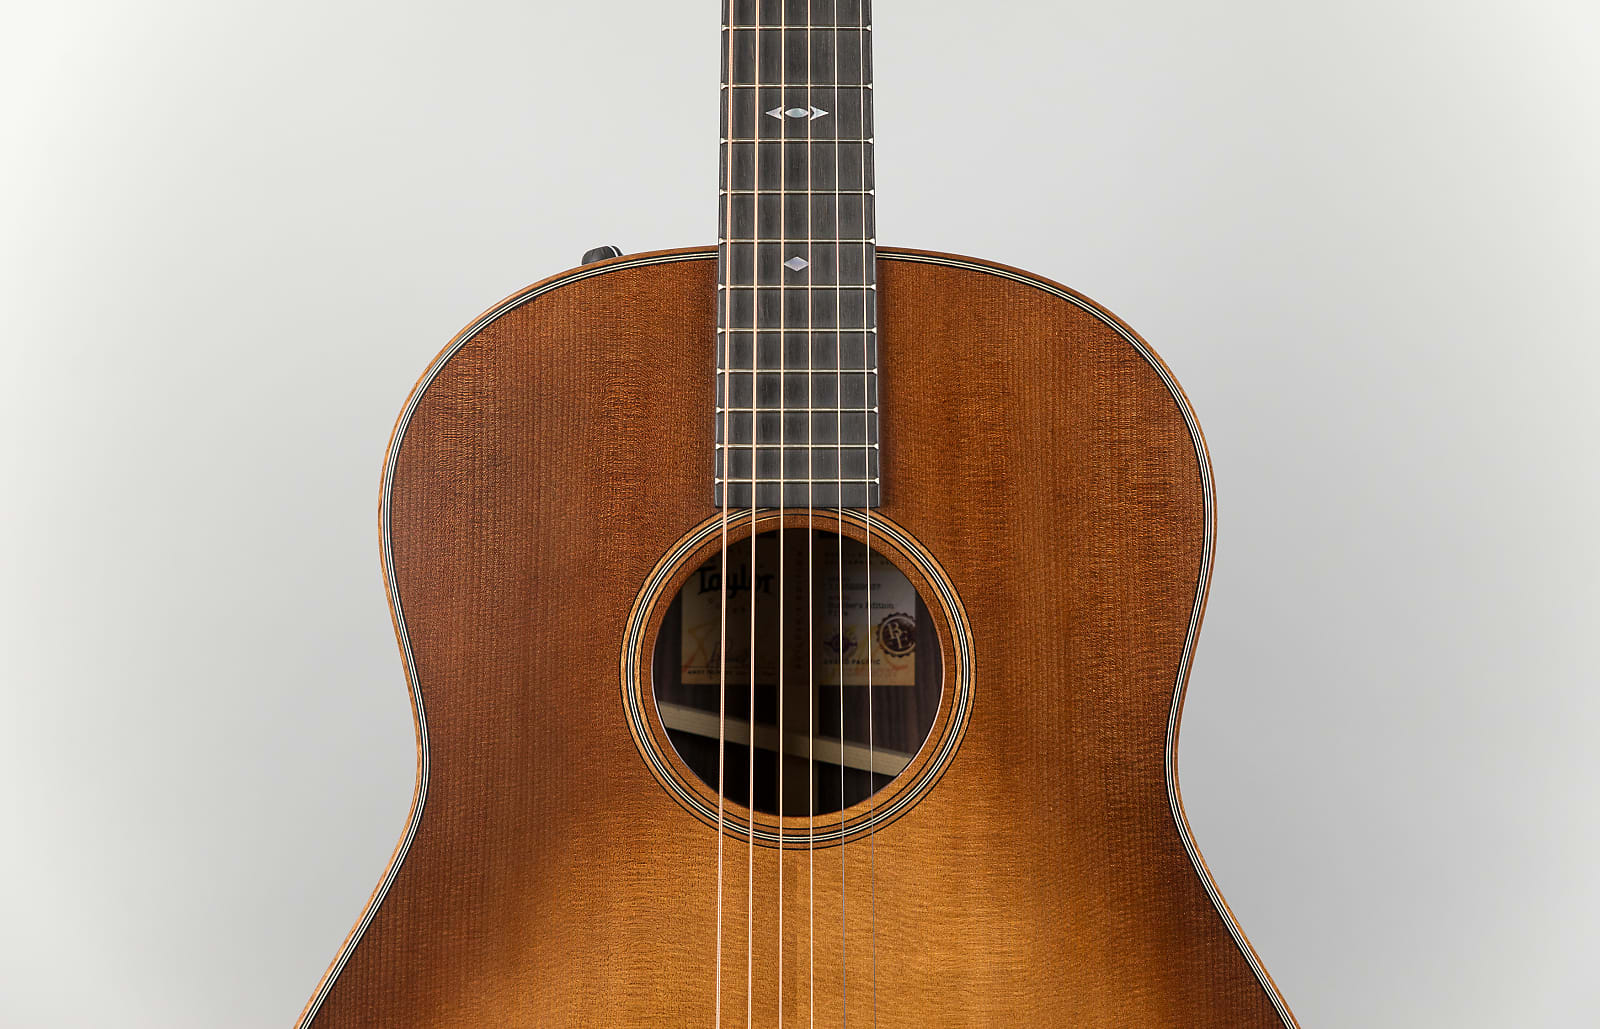 Taylor 717e Builder's Edition Grand Pacific, V-Class Bracing, Wild Honey Burst Finish